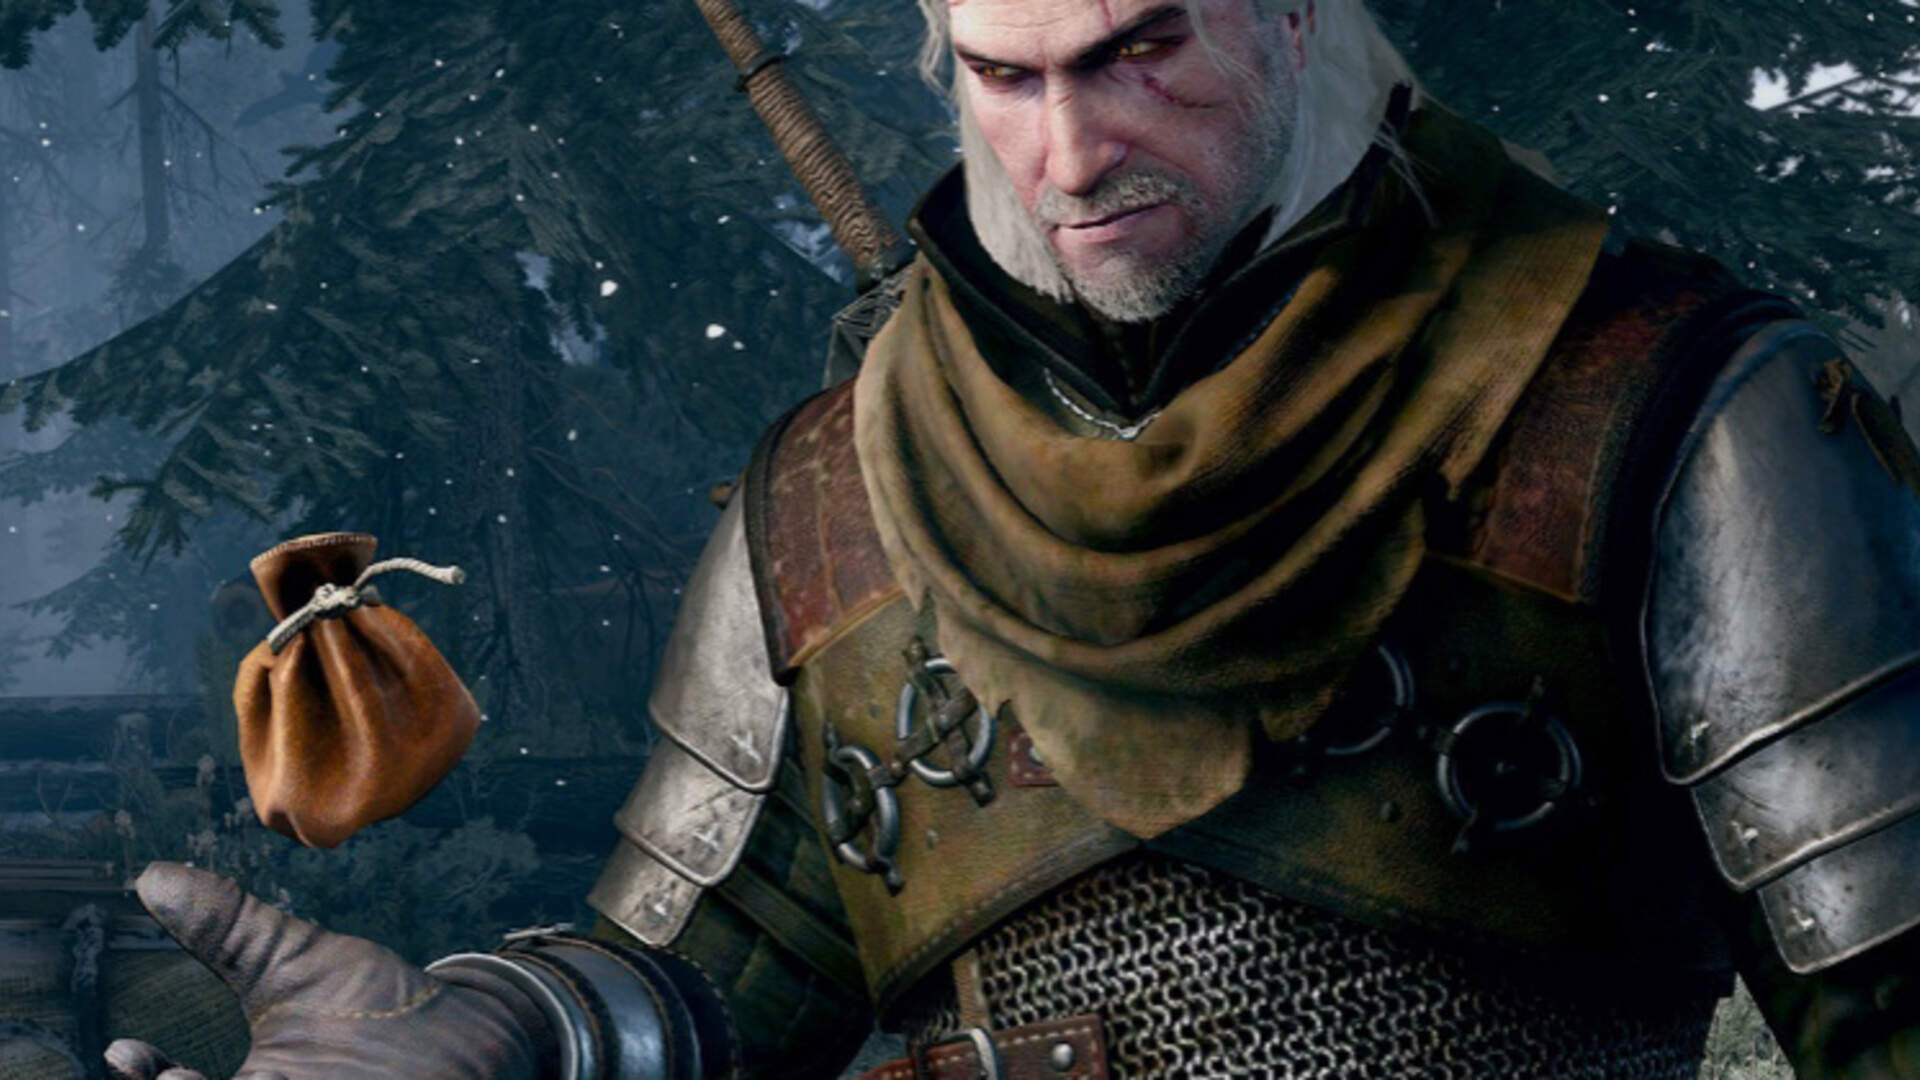 Henry Cavill Has Been Cast as Geralt in The Witcher Netflix Show